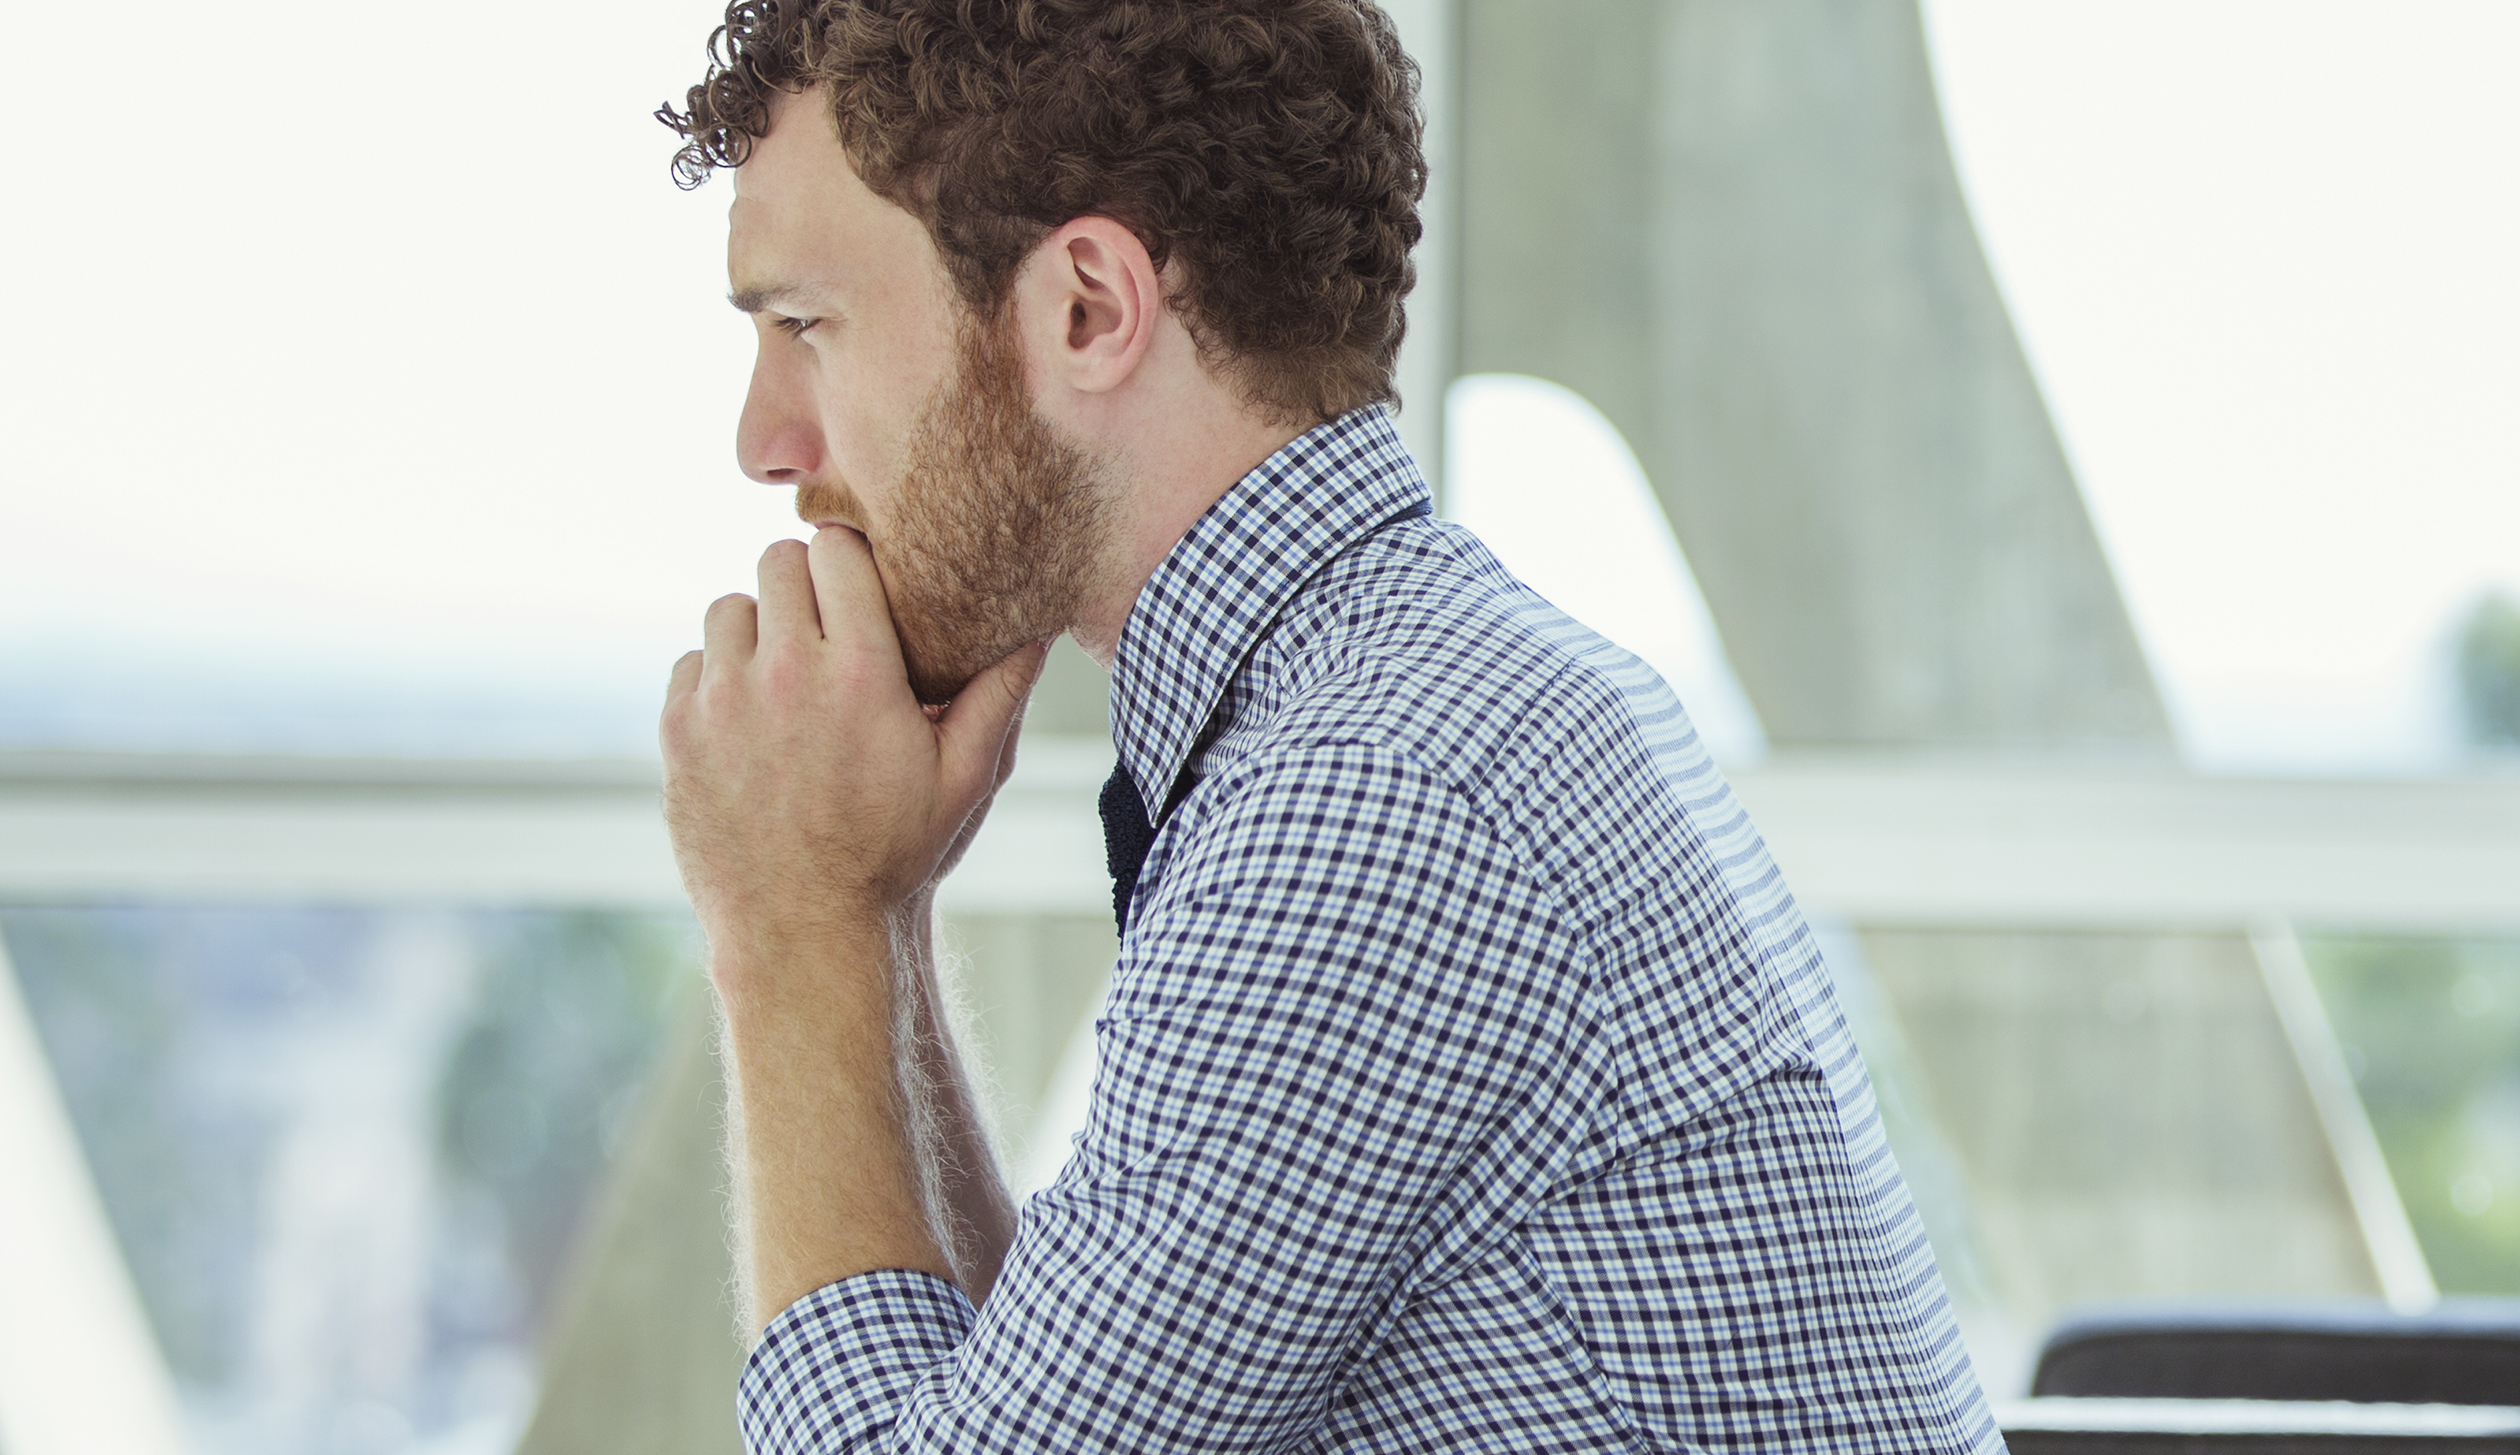 Pensive businessman sitting in office lobby